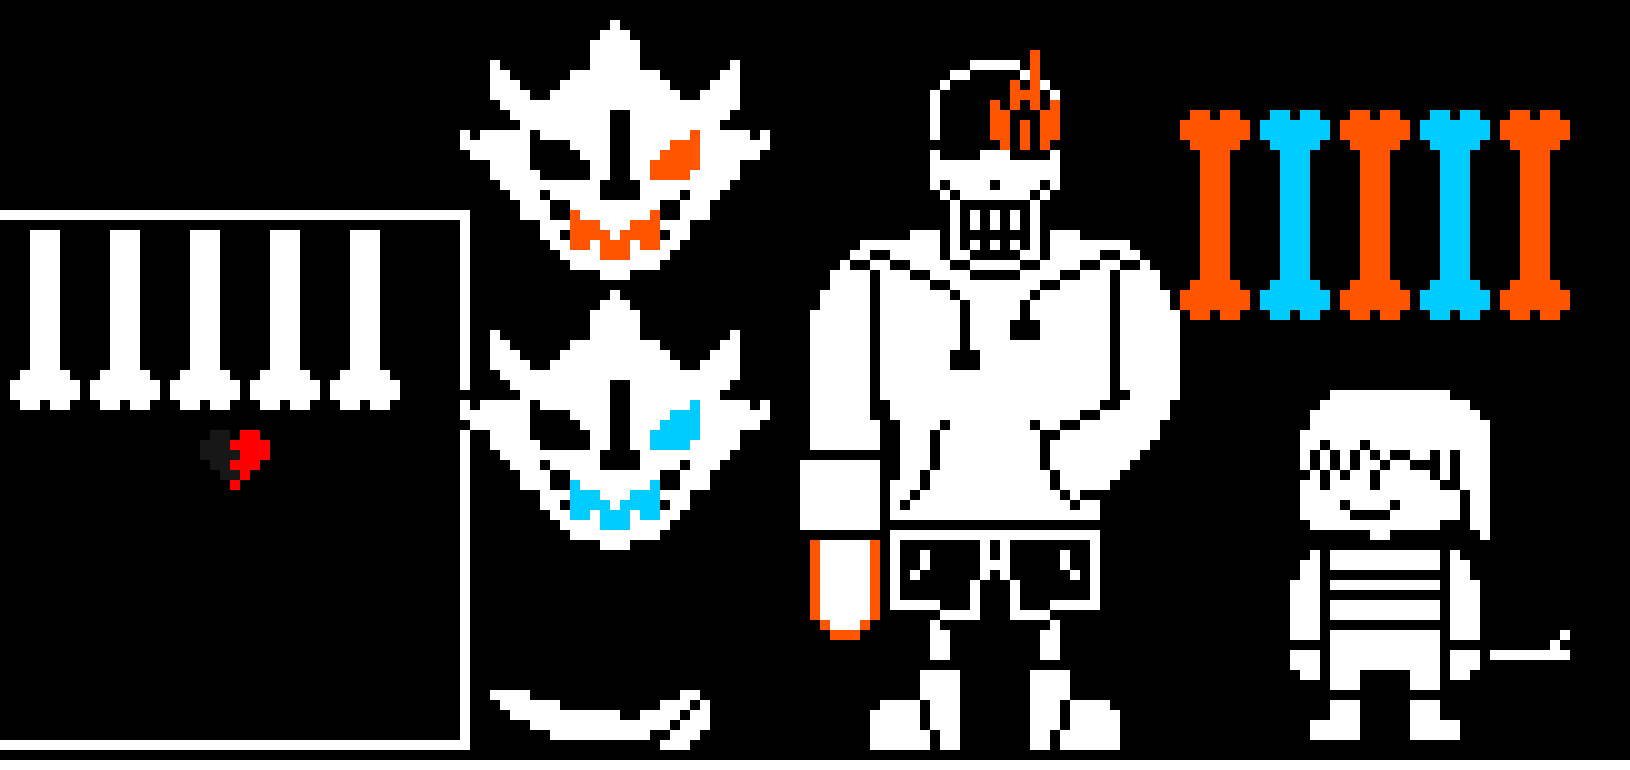 bad time oh no you messed up big time 2